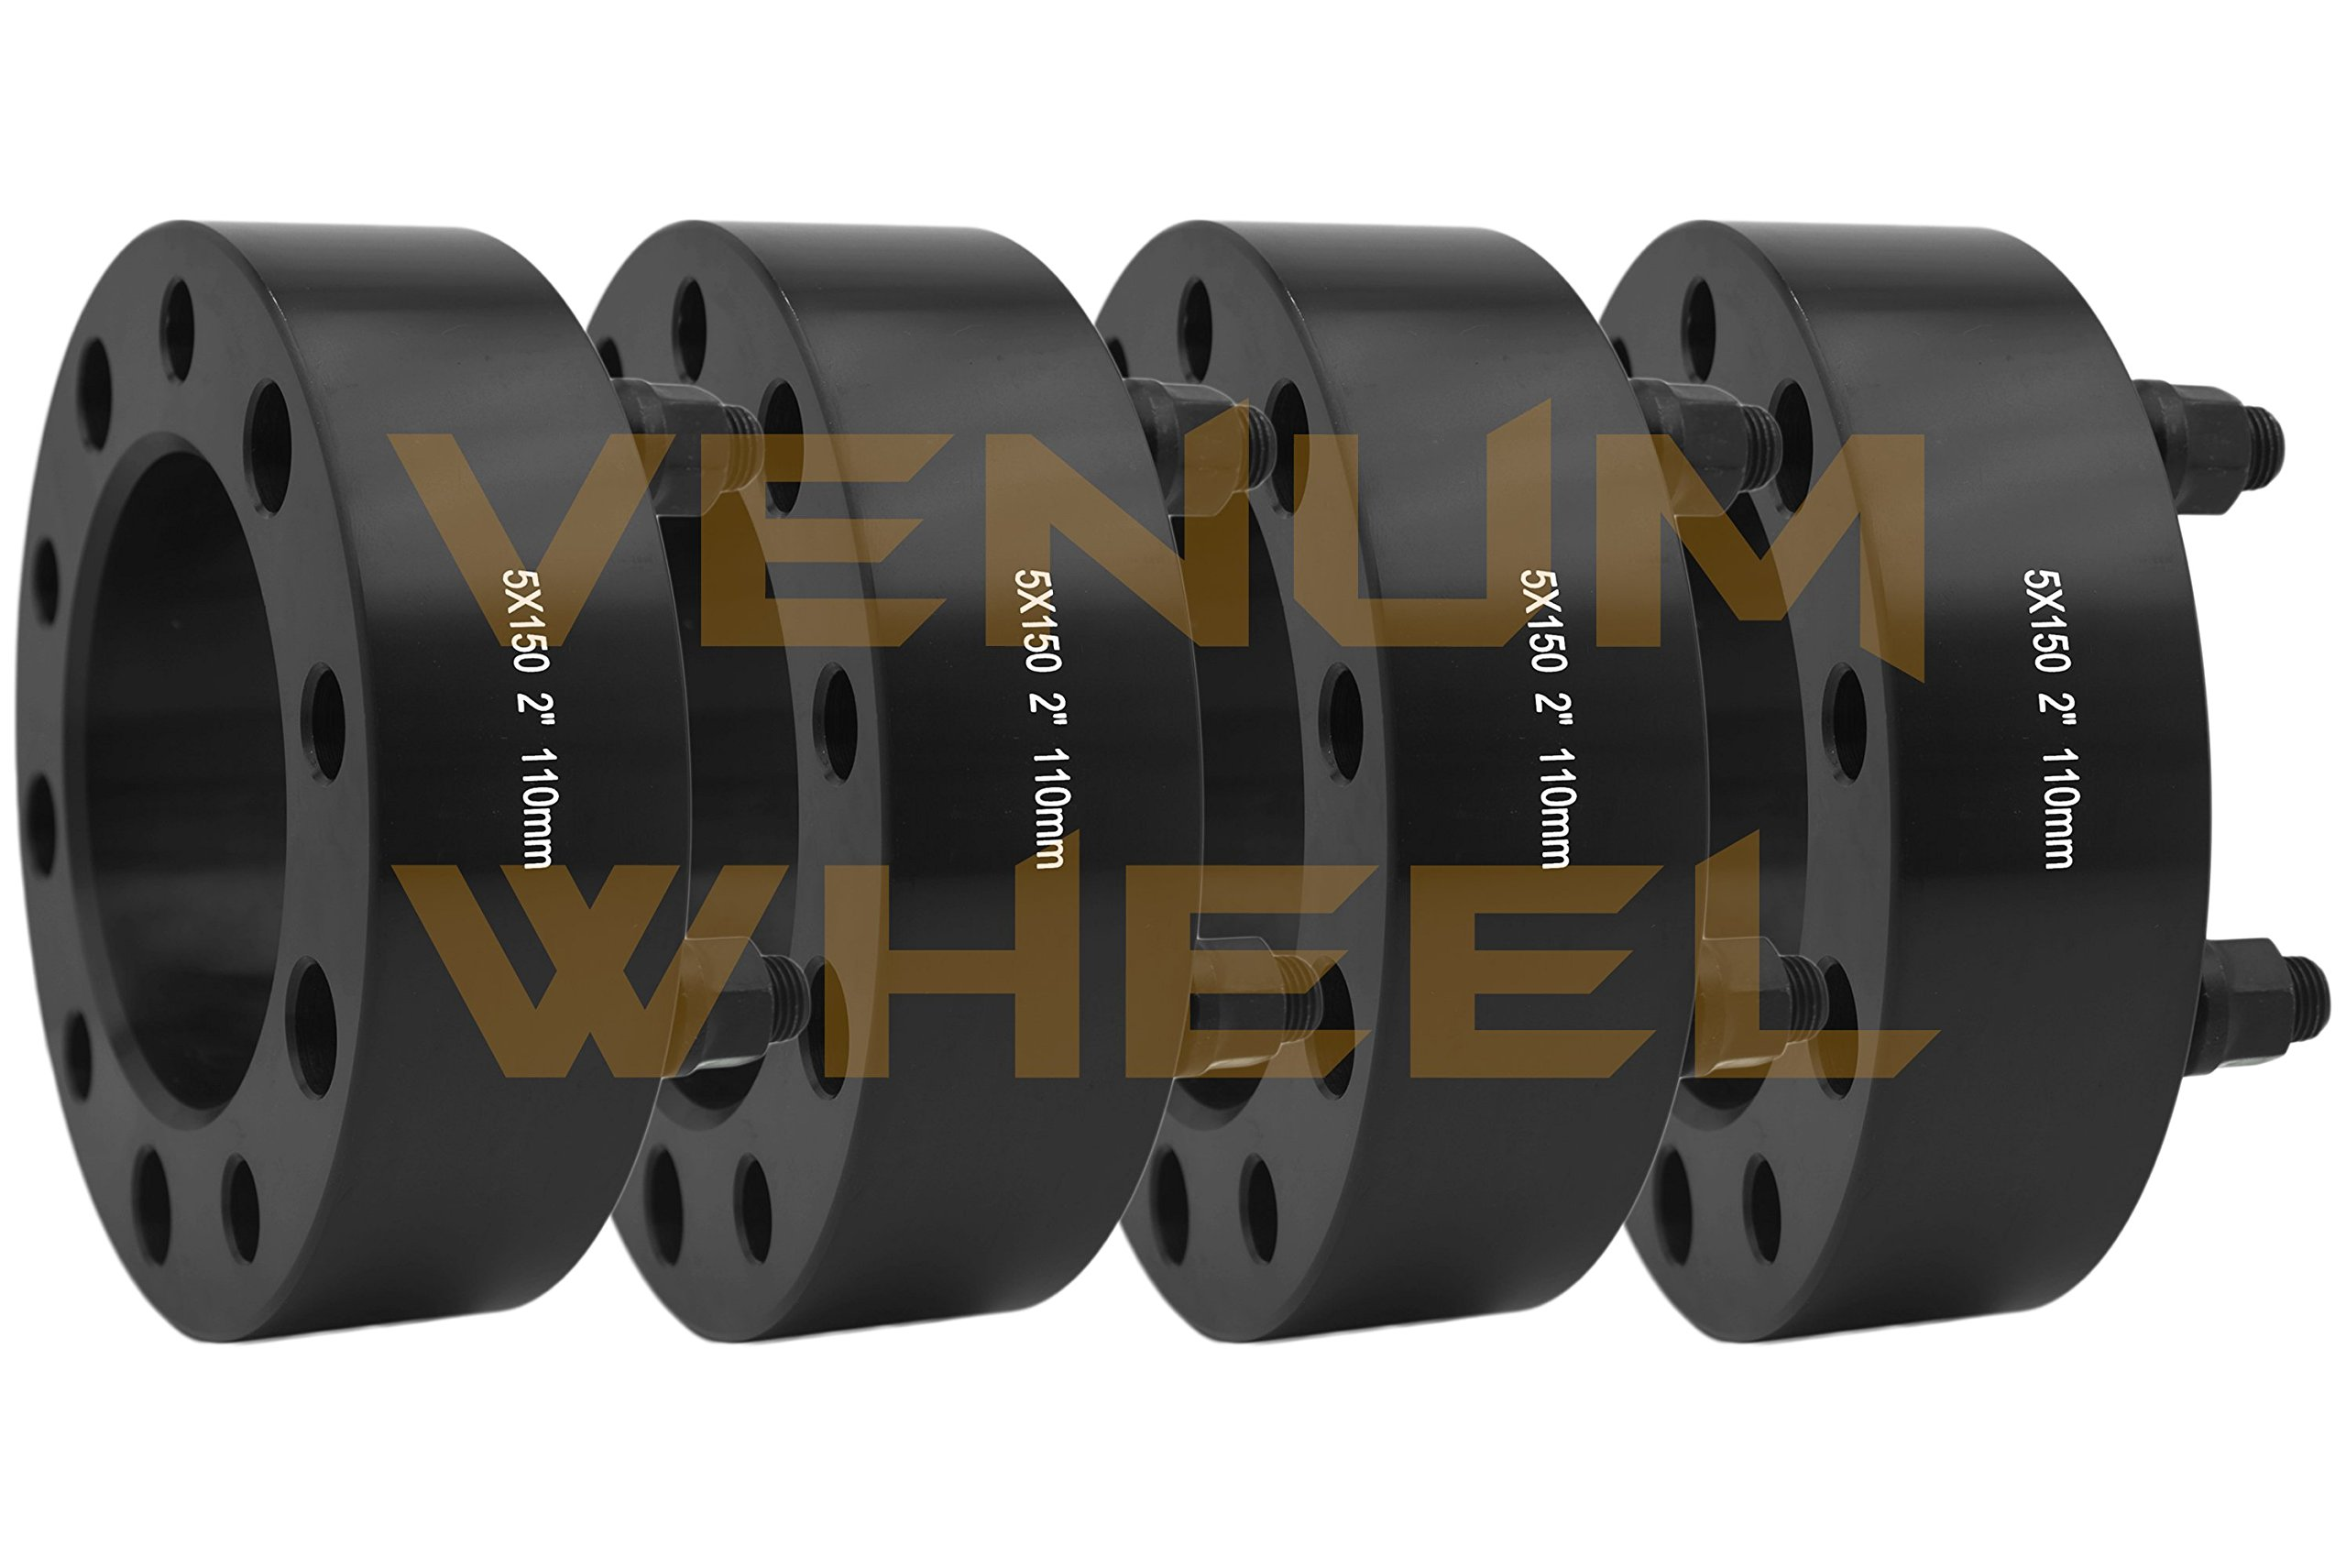 4 Pc 5x150 to 5x150 2'' Thick Black Hubcentric Wheel Spacers Adapter for Toyota Tundra 2007-2016 Hub Bore 110mm 14x1.5 Studs 6061 T6 Billet Aluminum (07-) Black by Venum wheel accessories (Image #1)